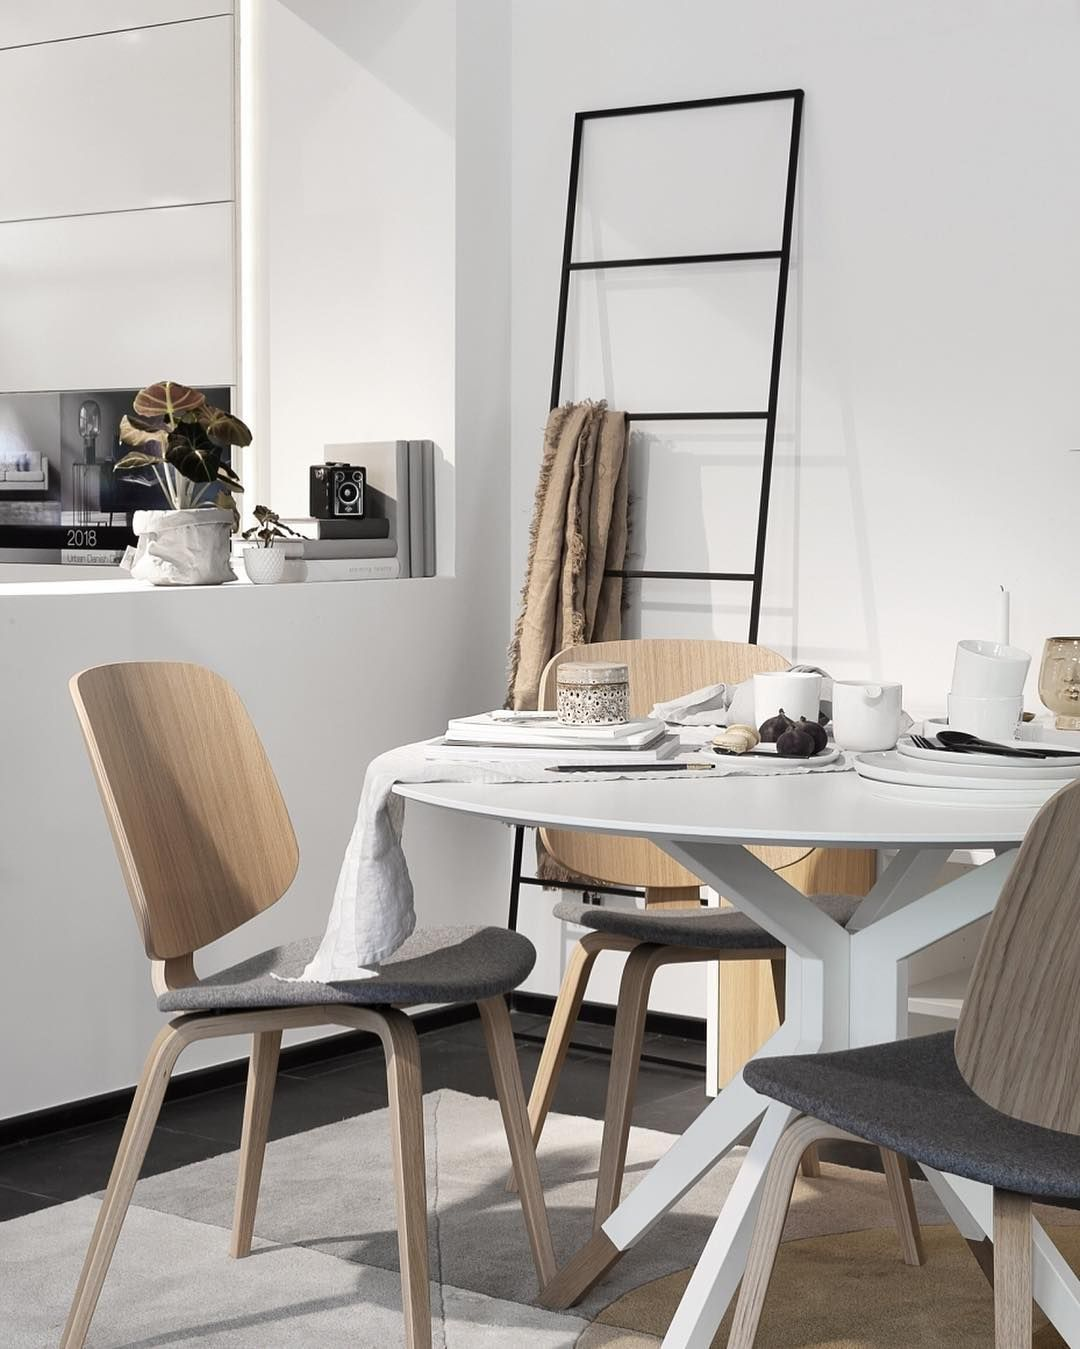 I created this cozy styling with the Billund dining set at Boconcept - You can vote for your favorite Billund styling over on the@boconcept_deutschland account and get a chance to win a 250 euro voucher. Voting ends October 25th at 8:00 #boconcept #sponsored #diningcompetition